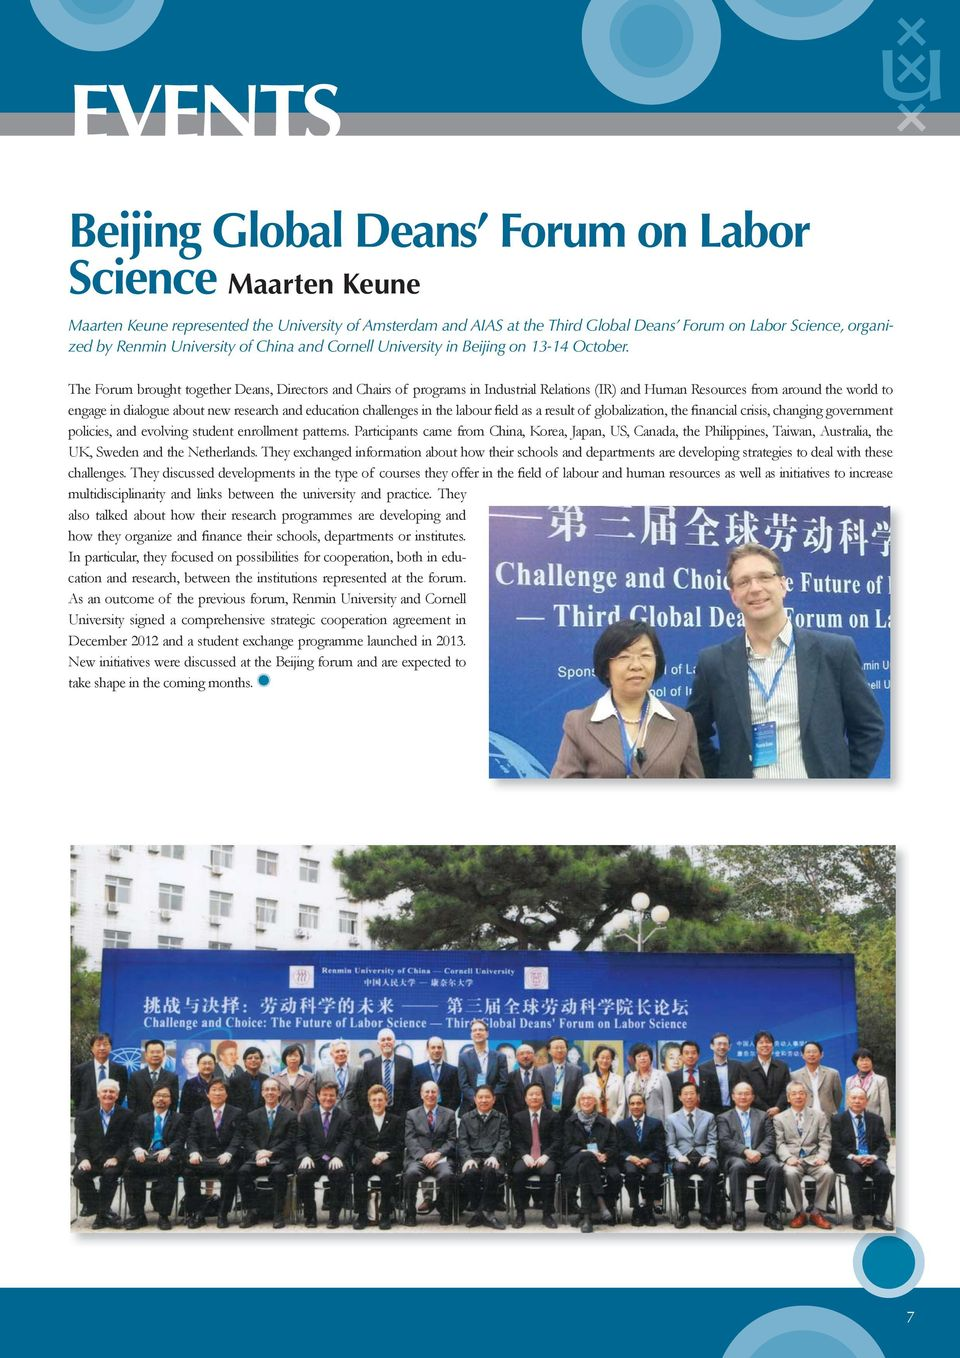 The Forum brought together Deans, Directors and Chairs of programs in Industrial Relations (IR) and Human Resources from around the world to engage in dialogue about new research and education